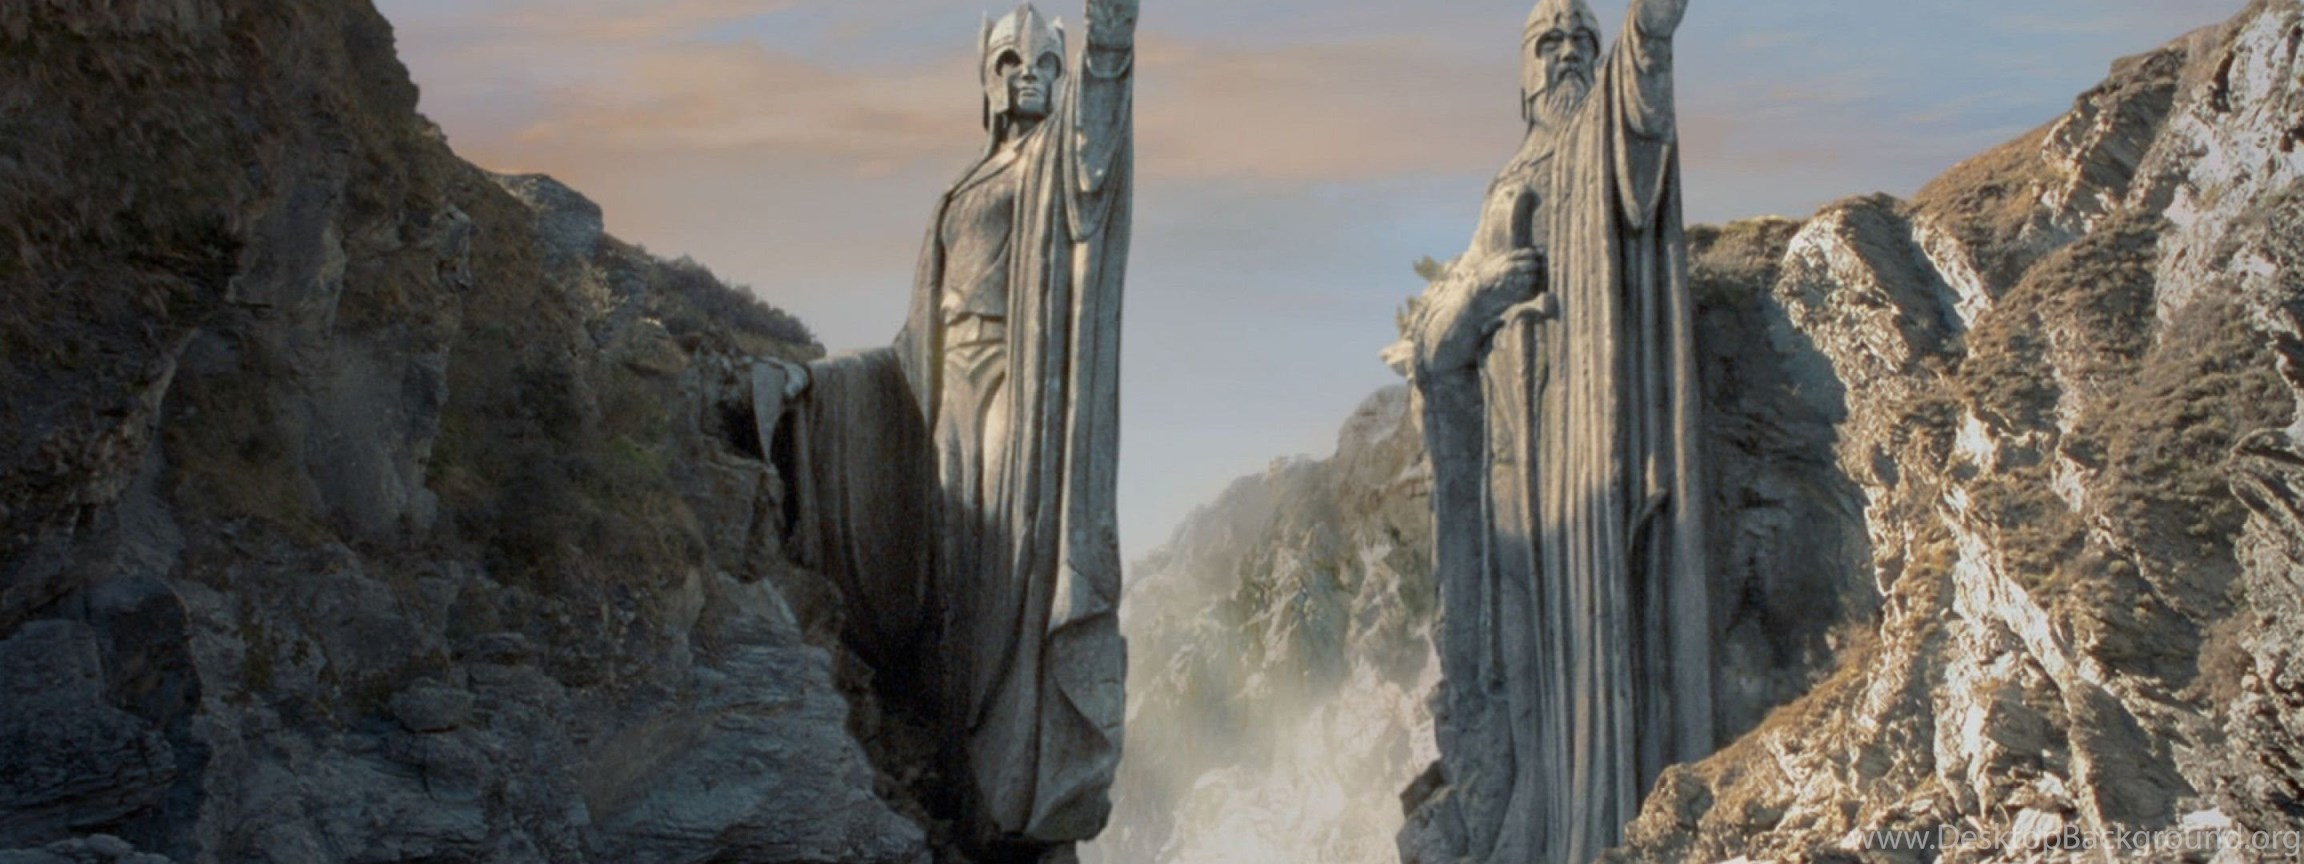 Lord Of The Rings Wallpaper,moves HD Wallpaper,1920x1080 ...